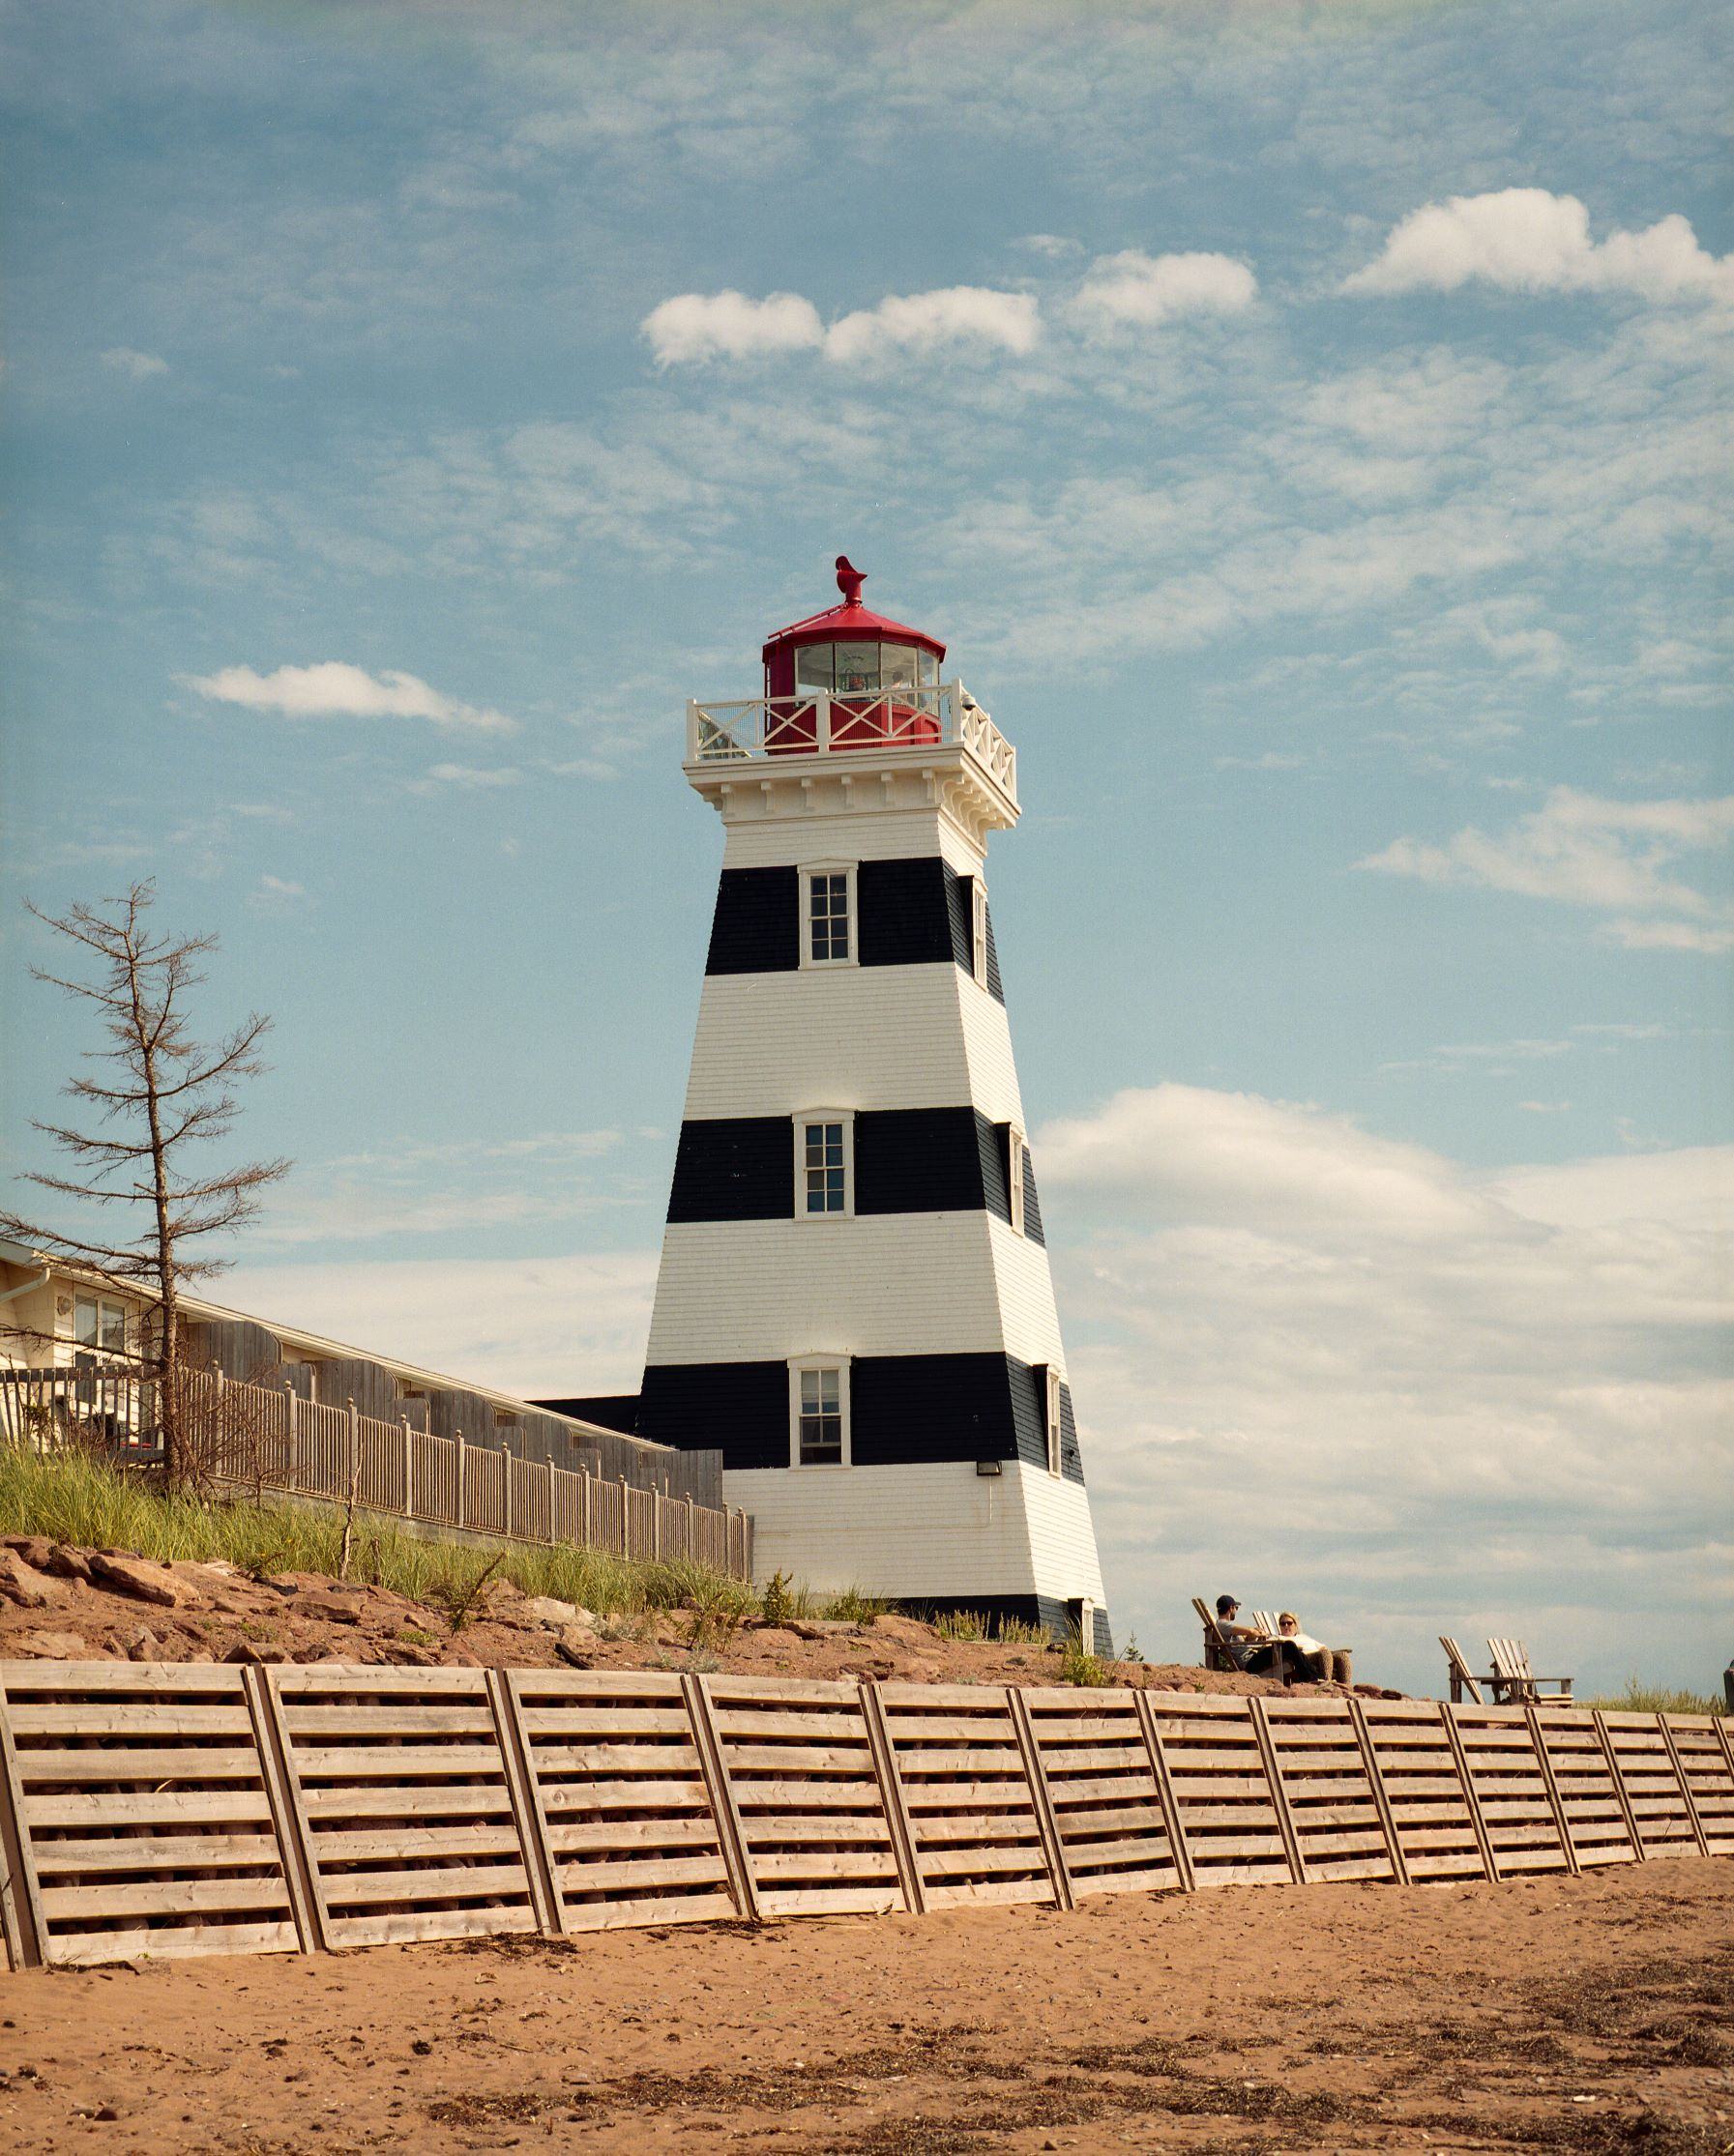 The Light House Inn by Jays Shutter